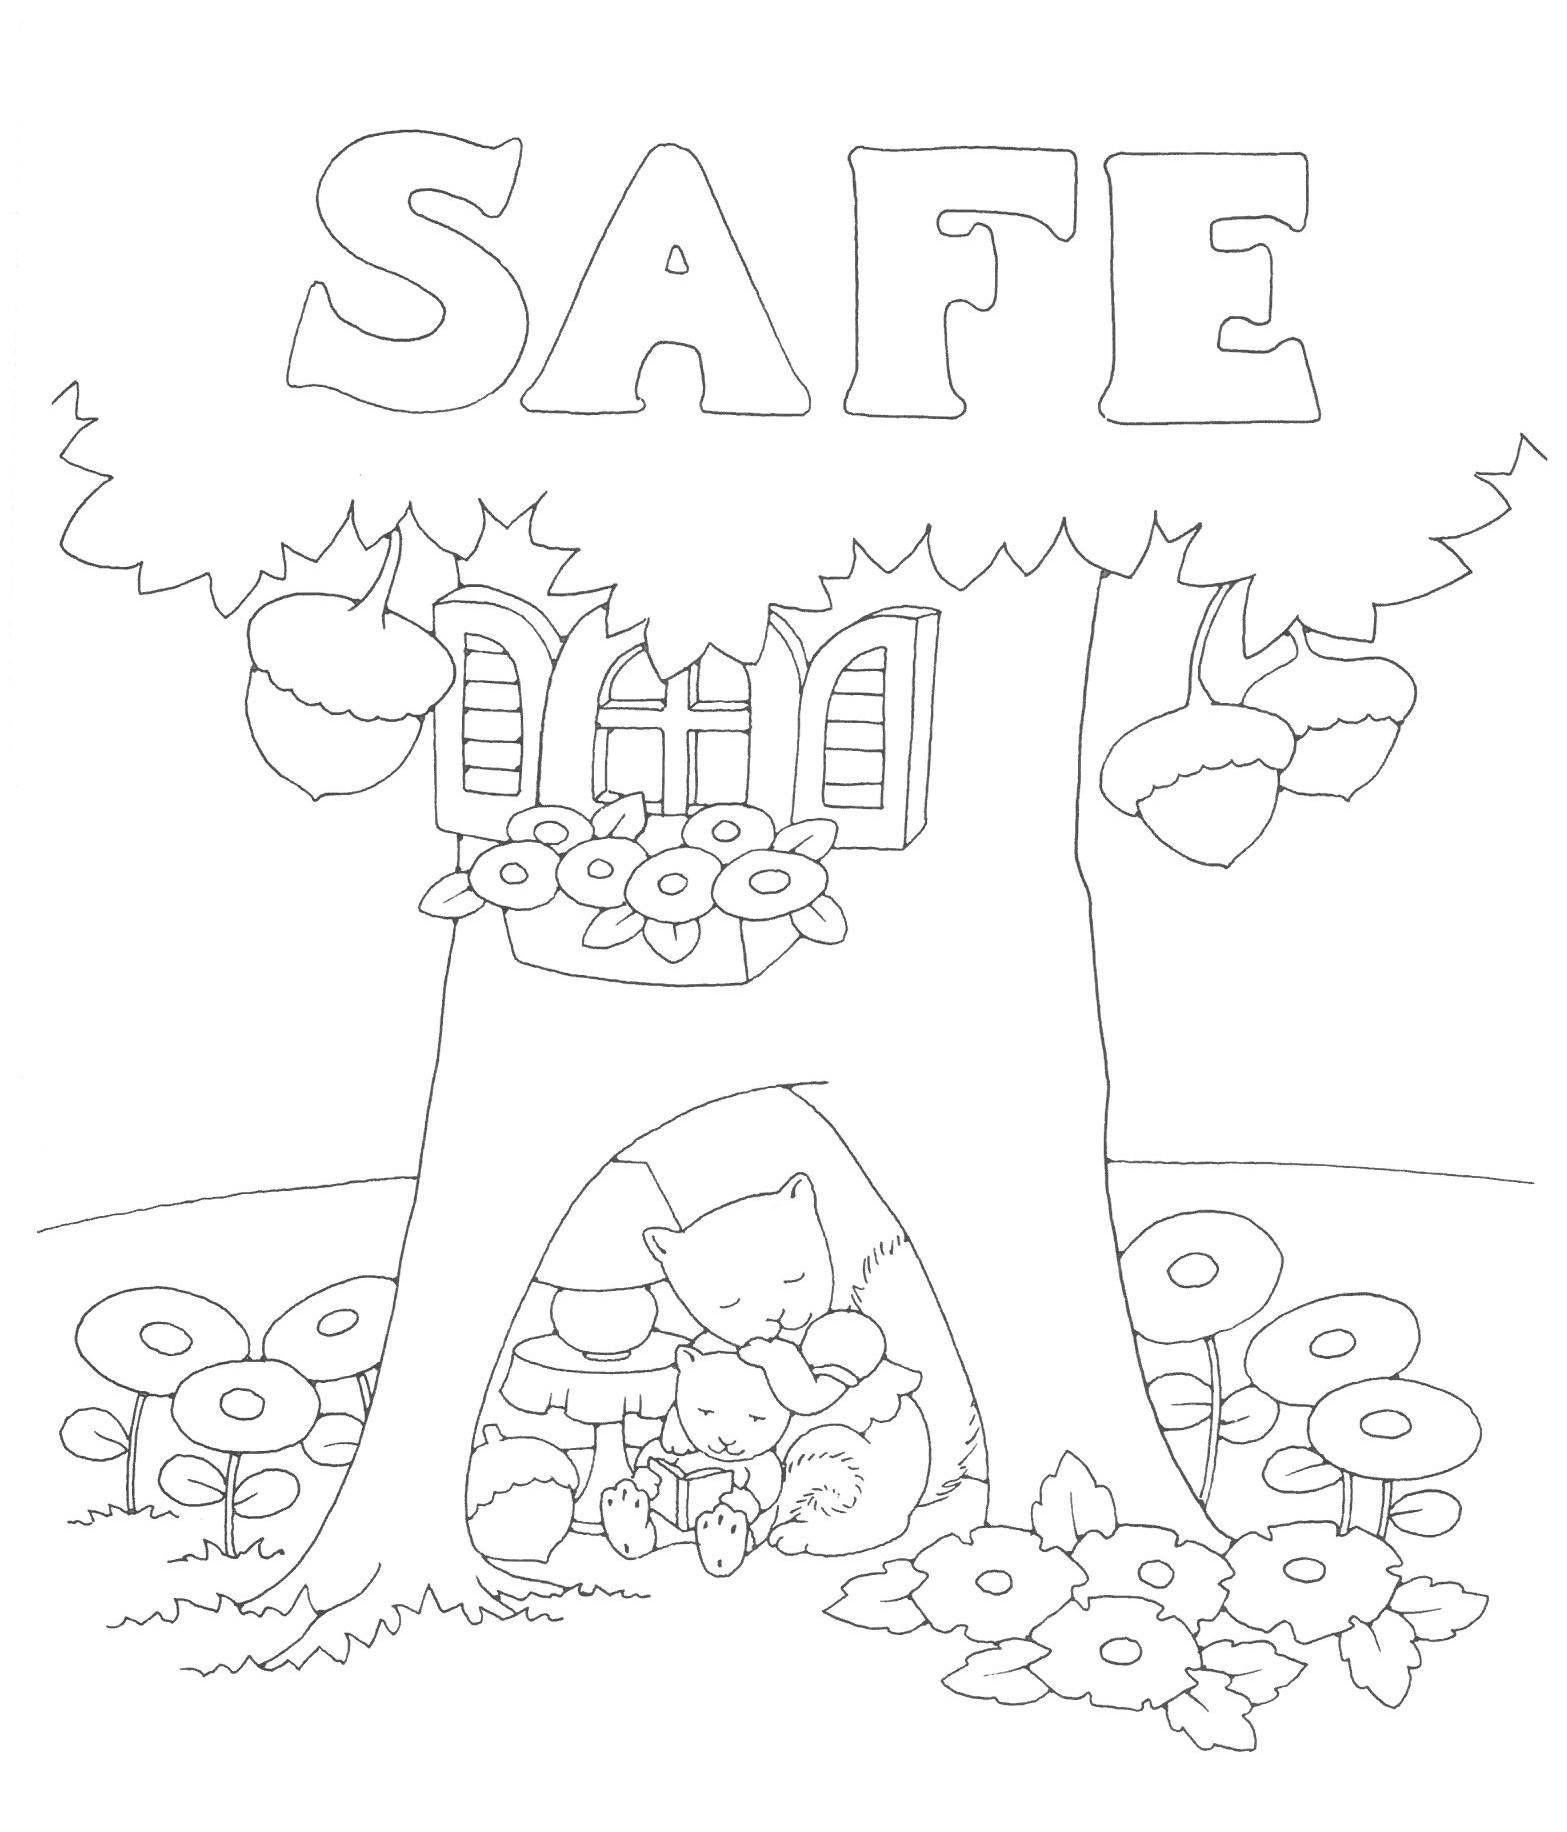 Mary Engelbreit Coloring Pages  Printable 13i - Save it to your computer